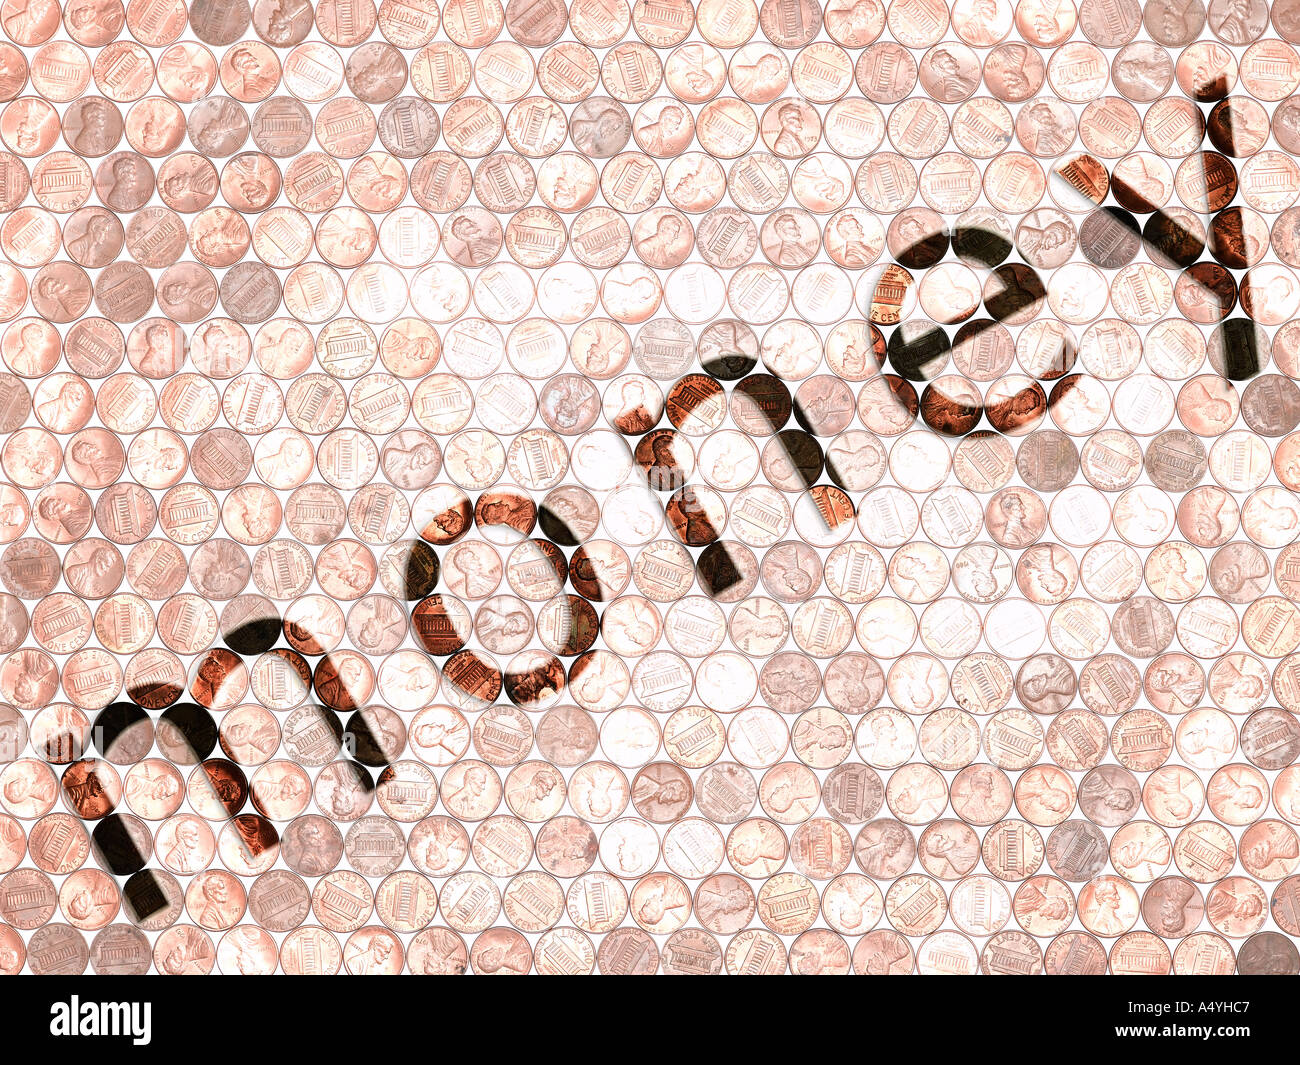 Word MONEY written on form made from coins Stock Photo